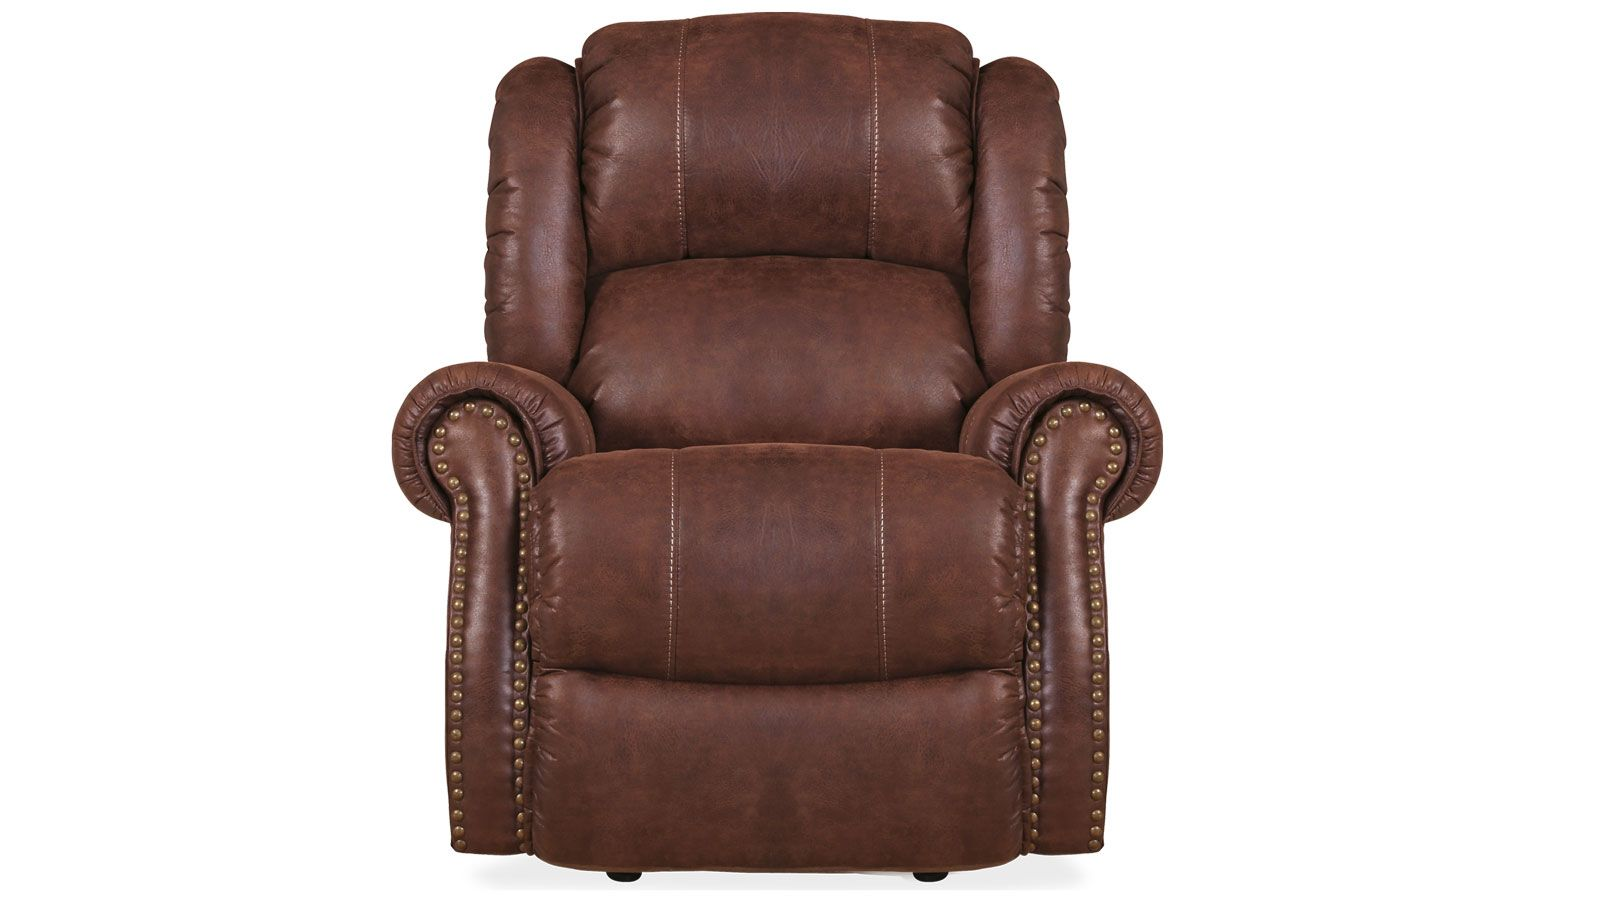 Electric Recliner Leather Chairs Recliners